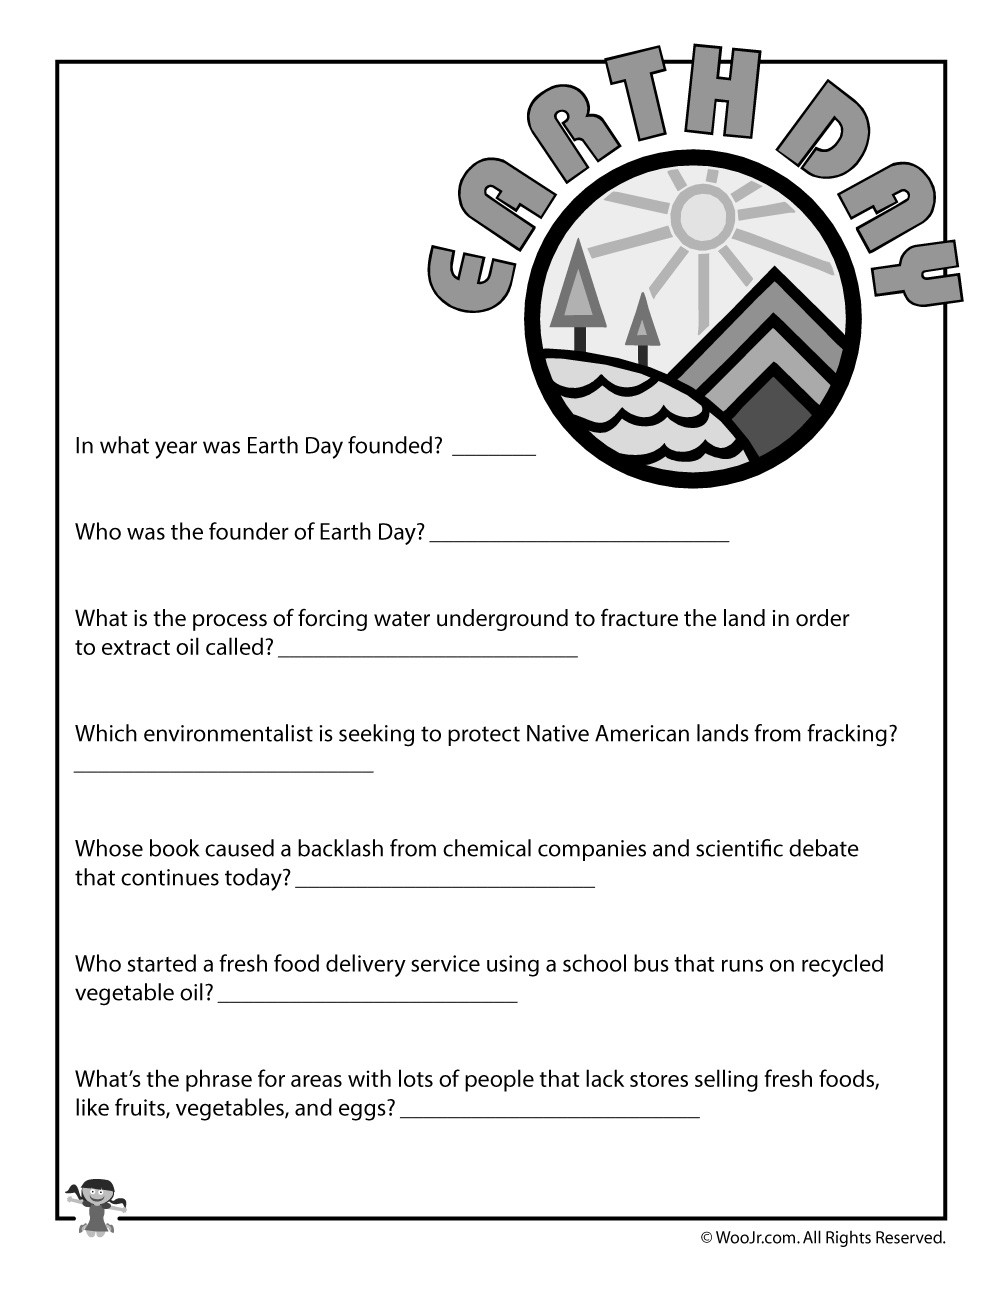 Earth Day Math Worksheets Earth Day Printable Quiz